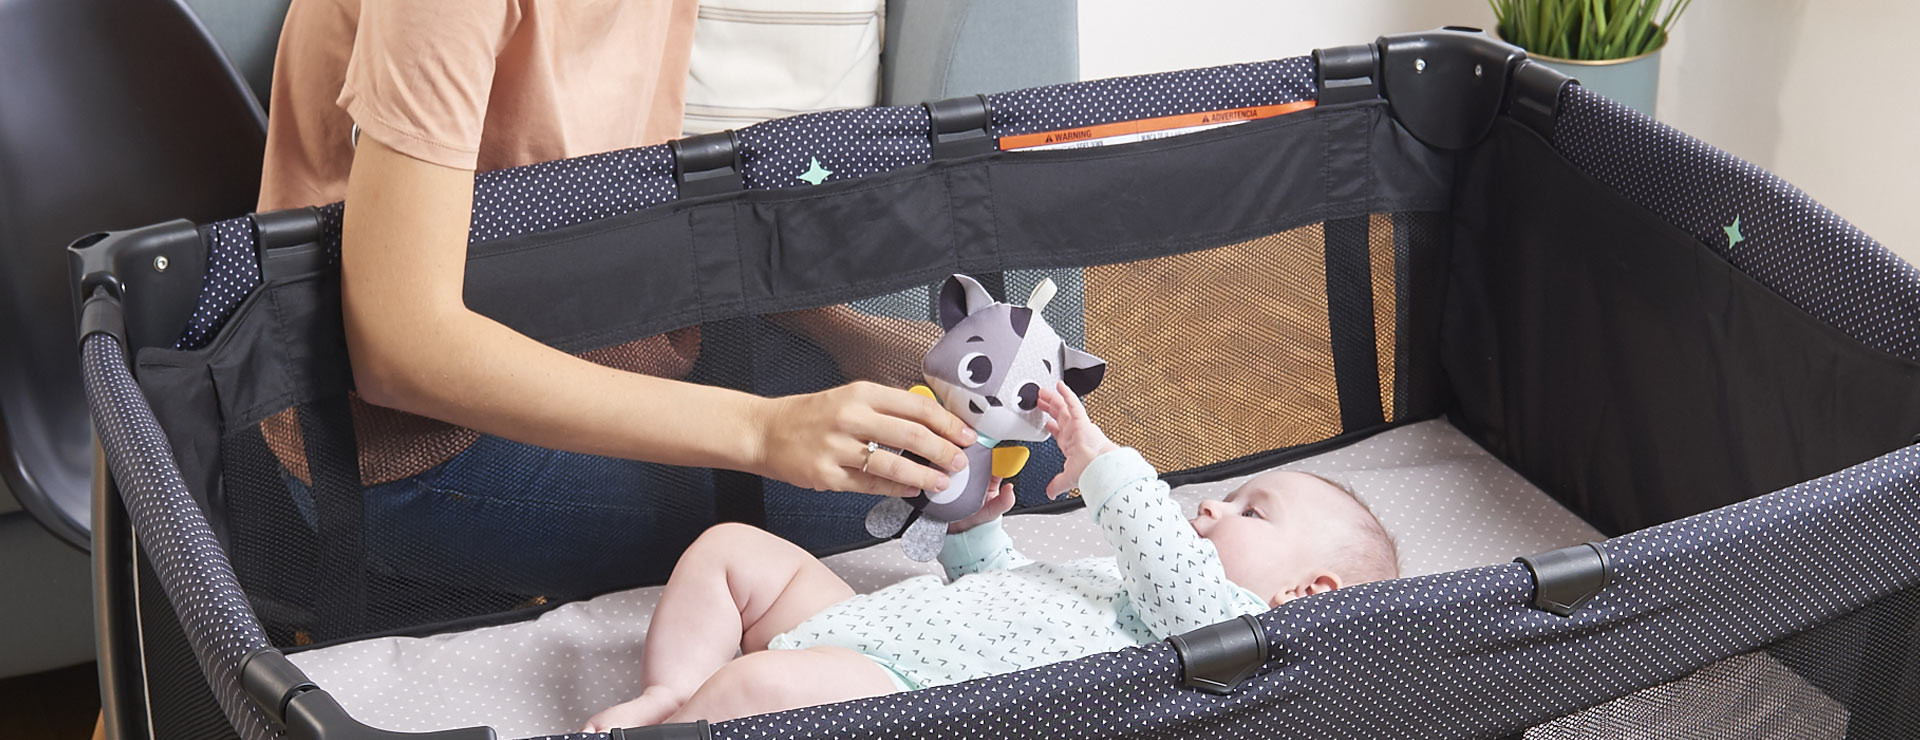 Play bassinet provides a secure place for babies up to 15 lbs.